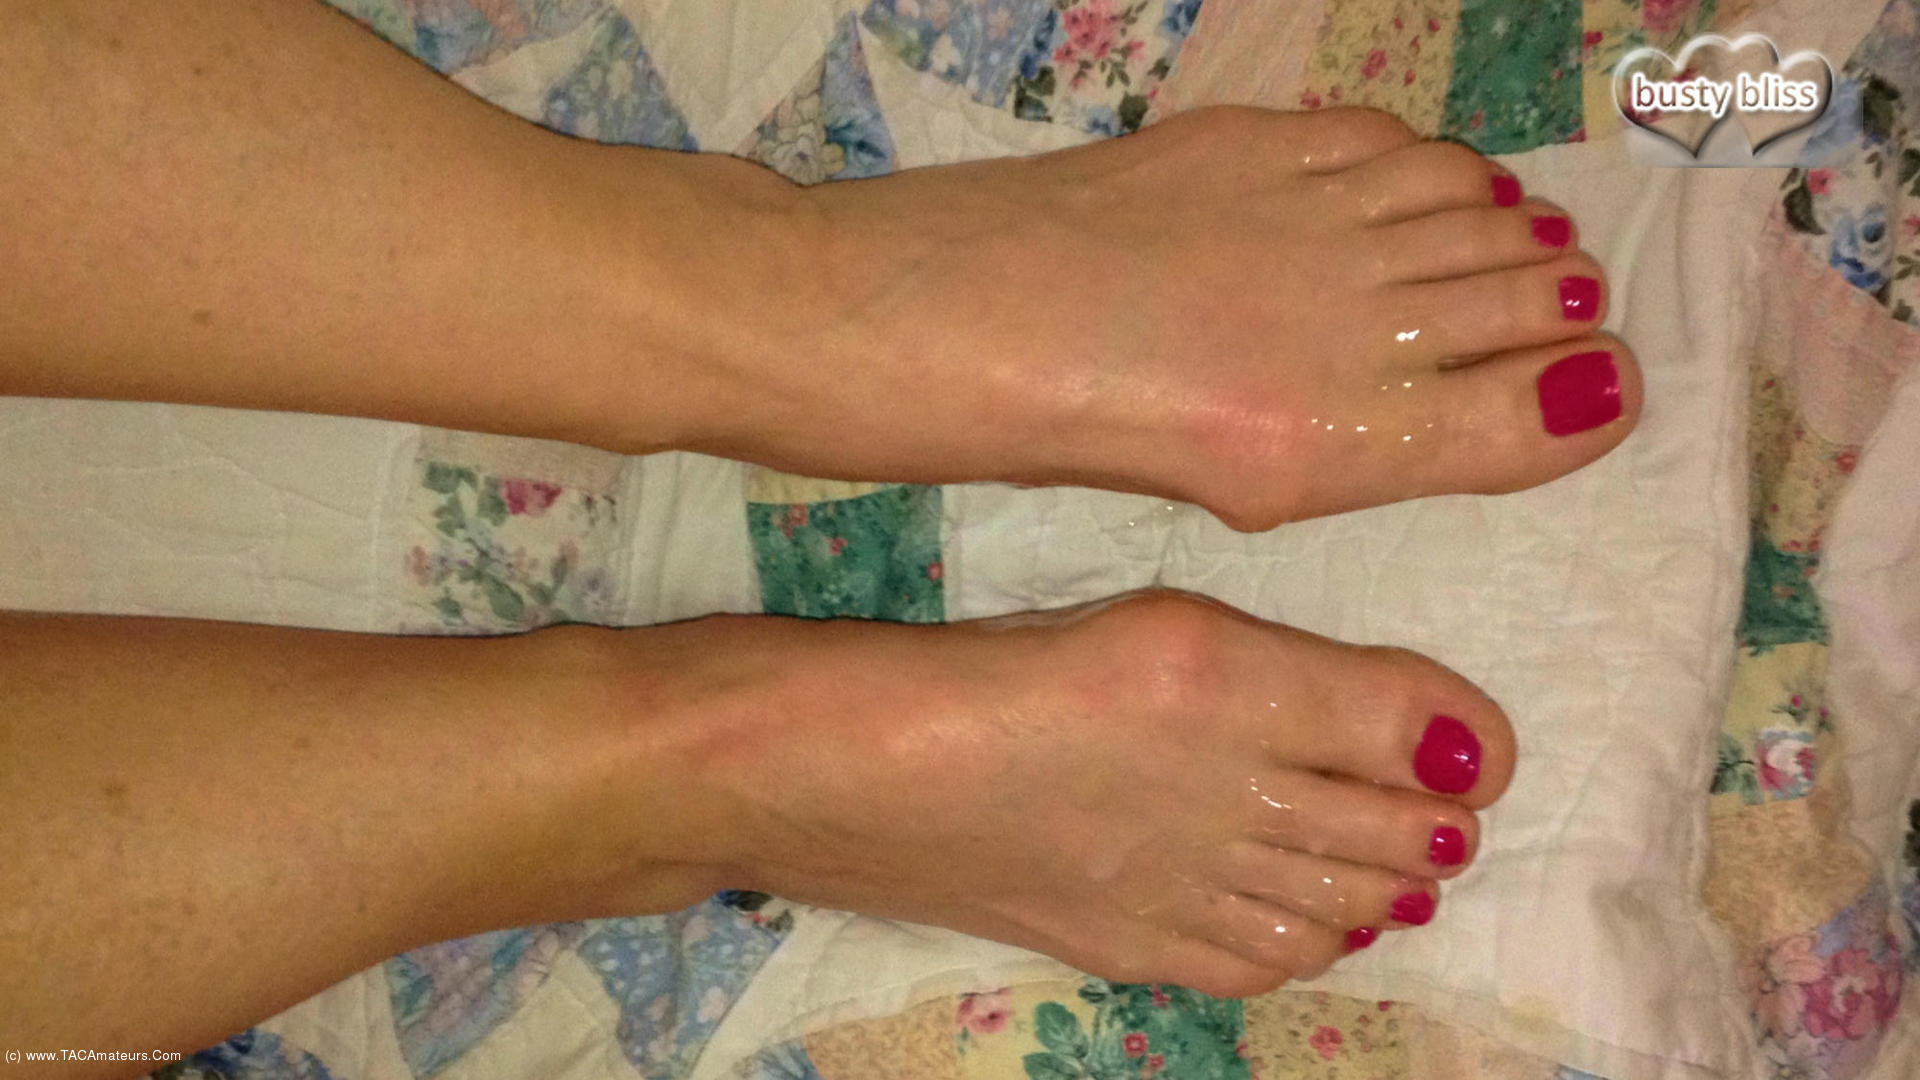 BustyBliss - SEE MY TOES & FEET BLASTED BY CUMSHOTS scene 1